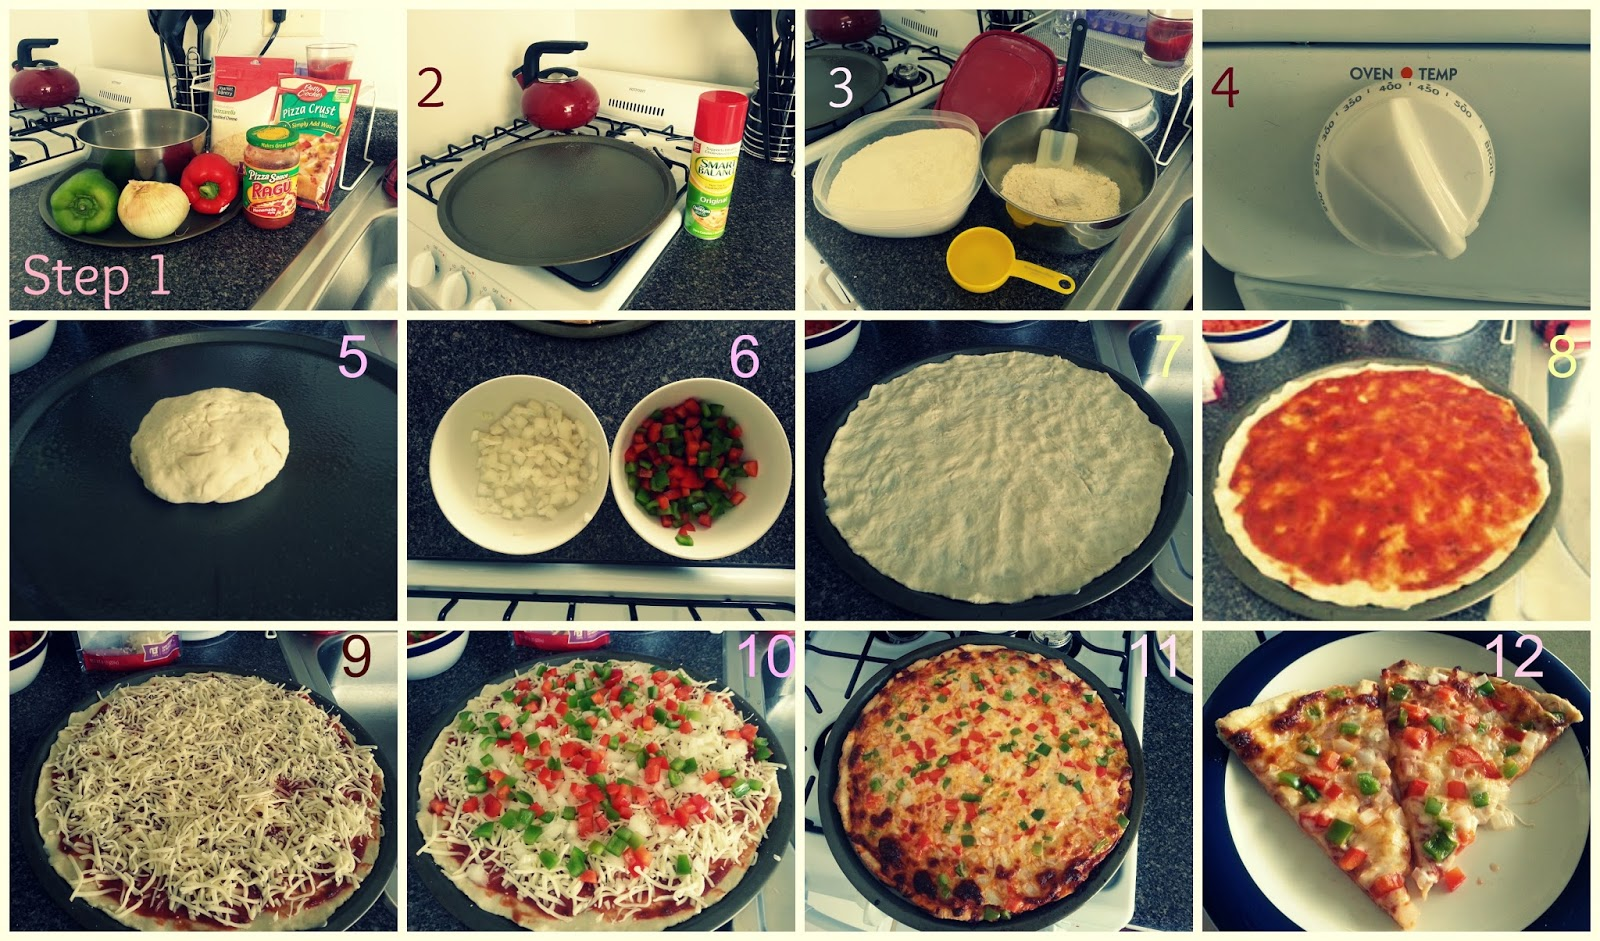 Pizza dough recipe step by step